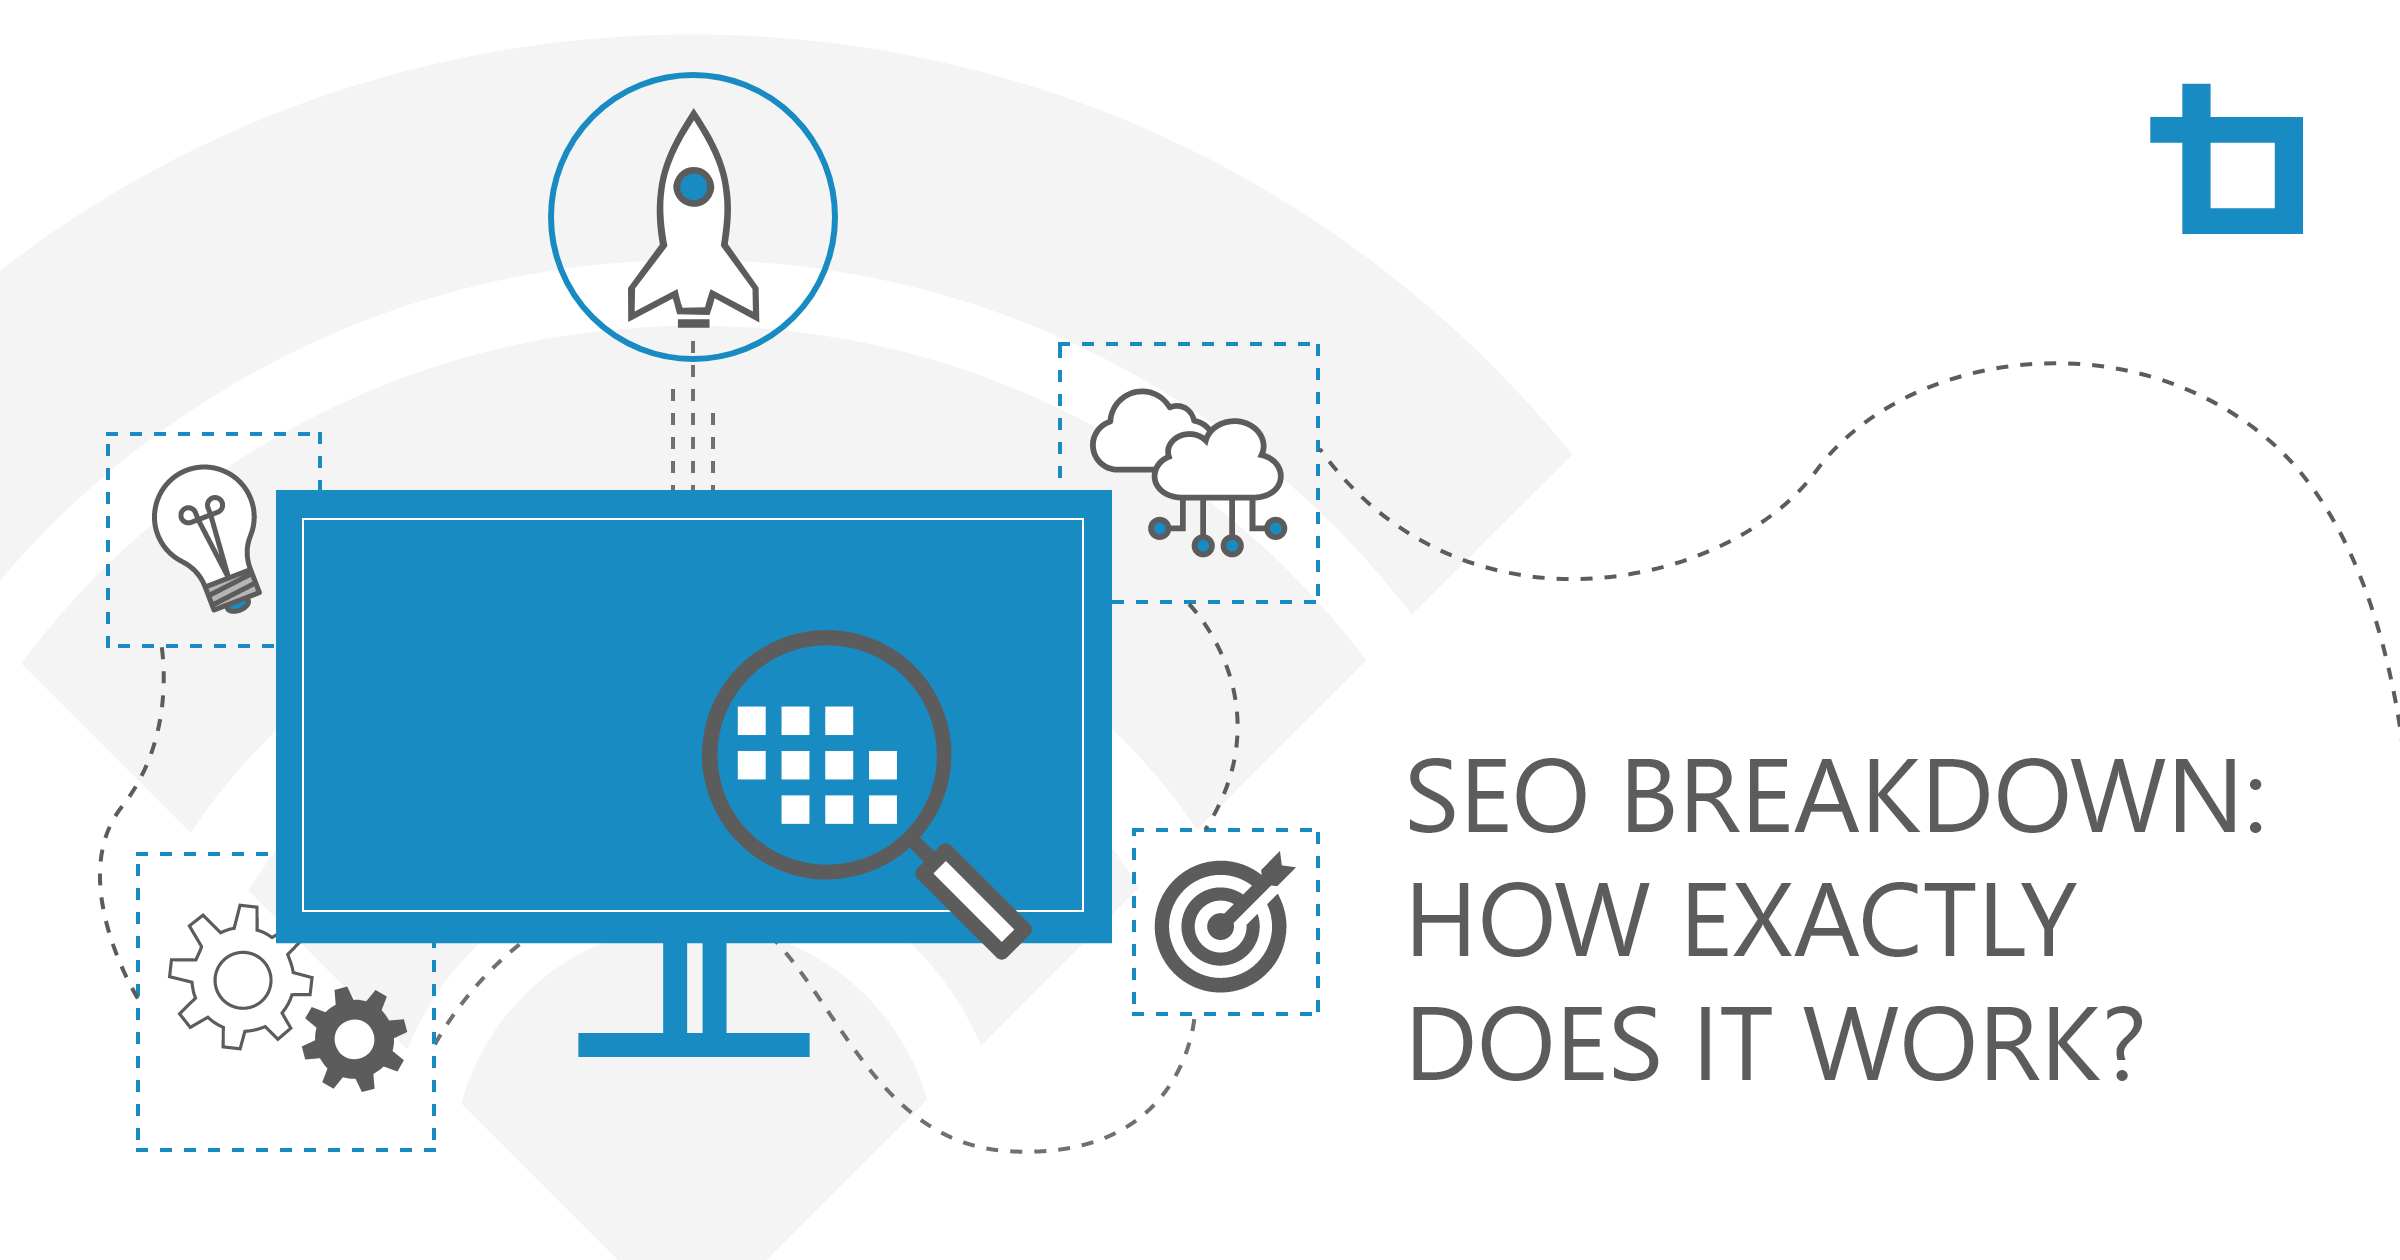 SEO Breakdown: How Exactly Does It Work?